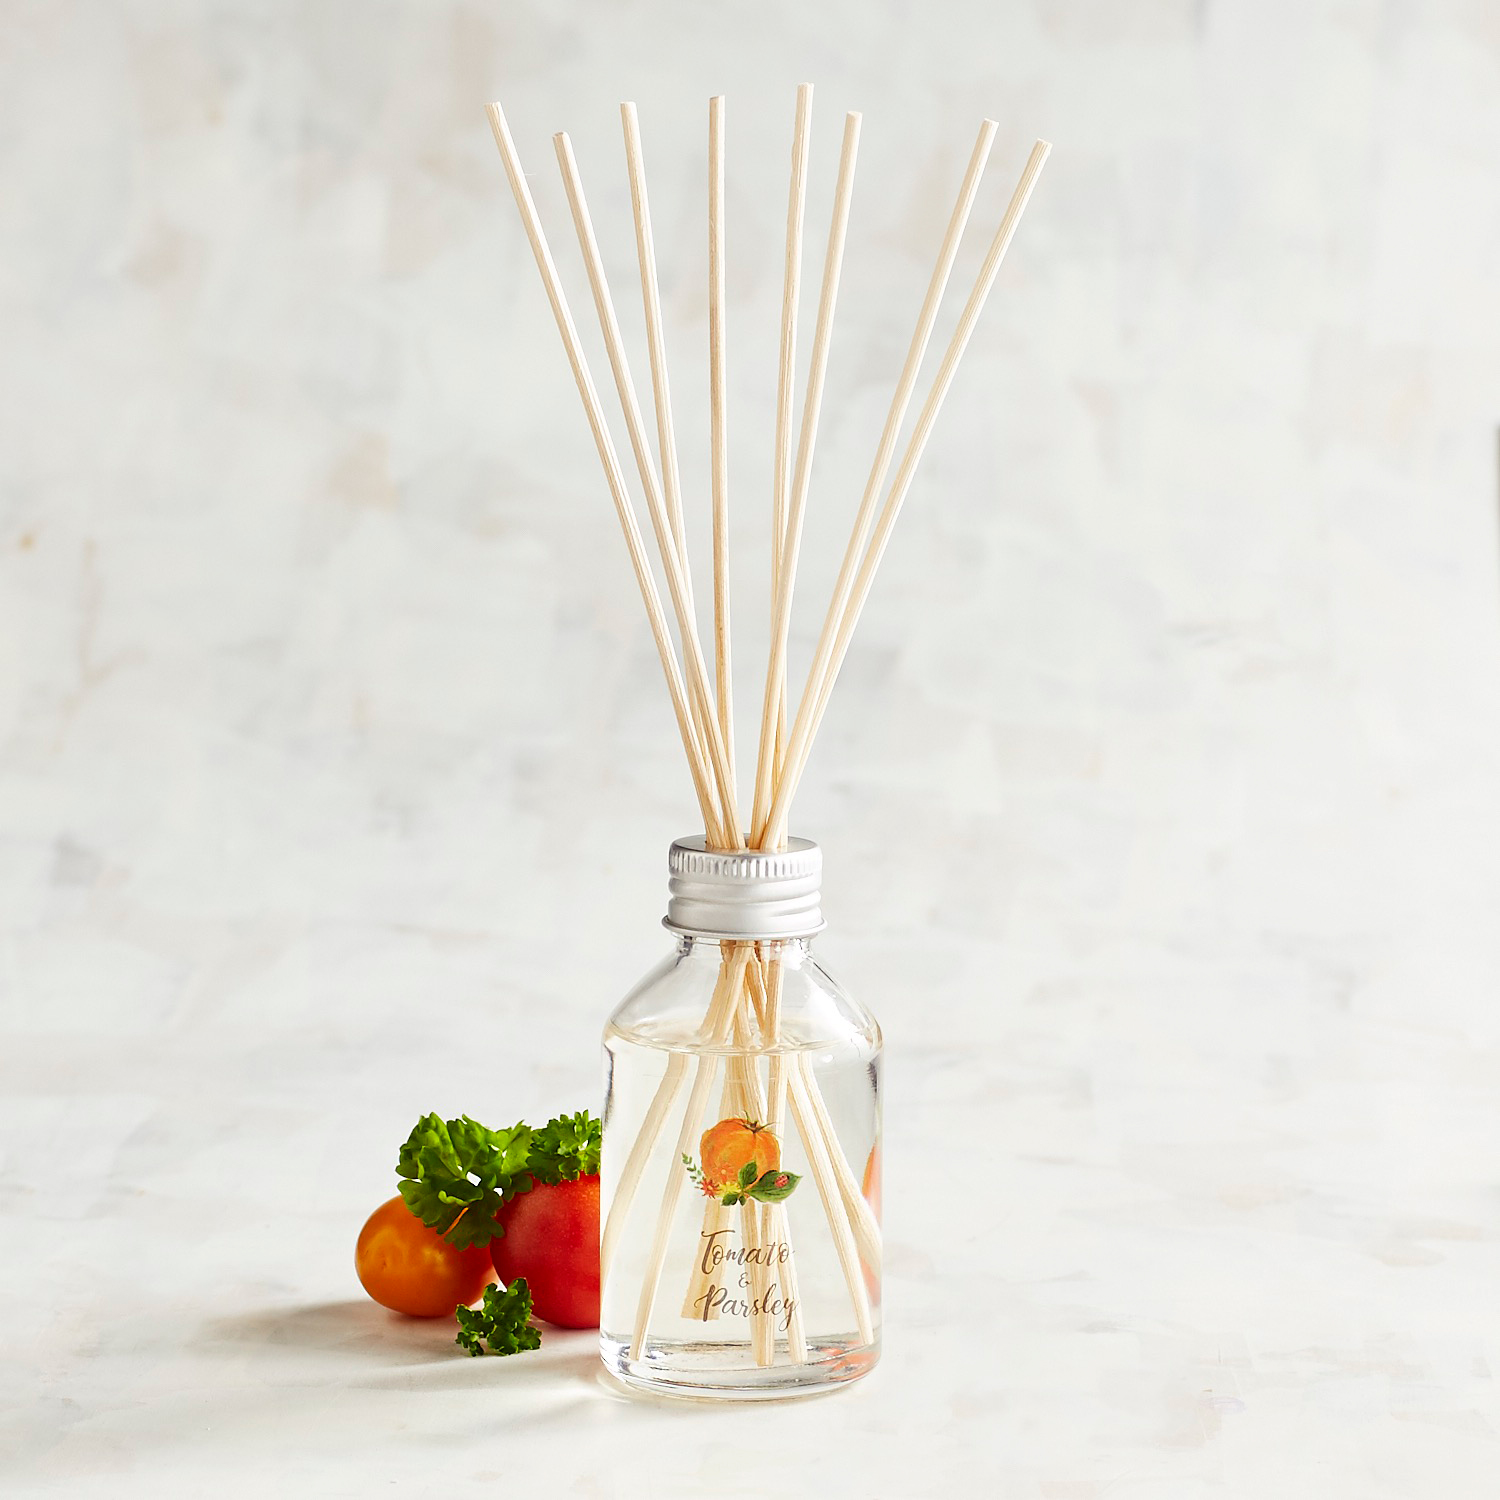 Tomato & Parsley Reed Diffuser